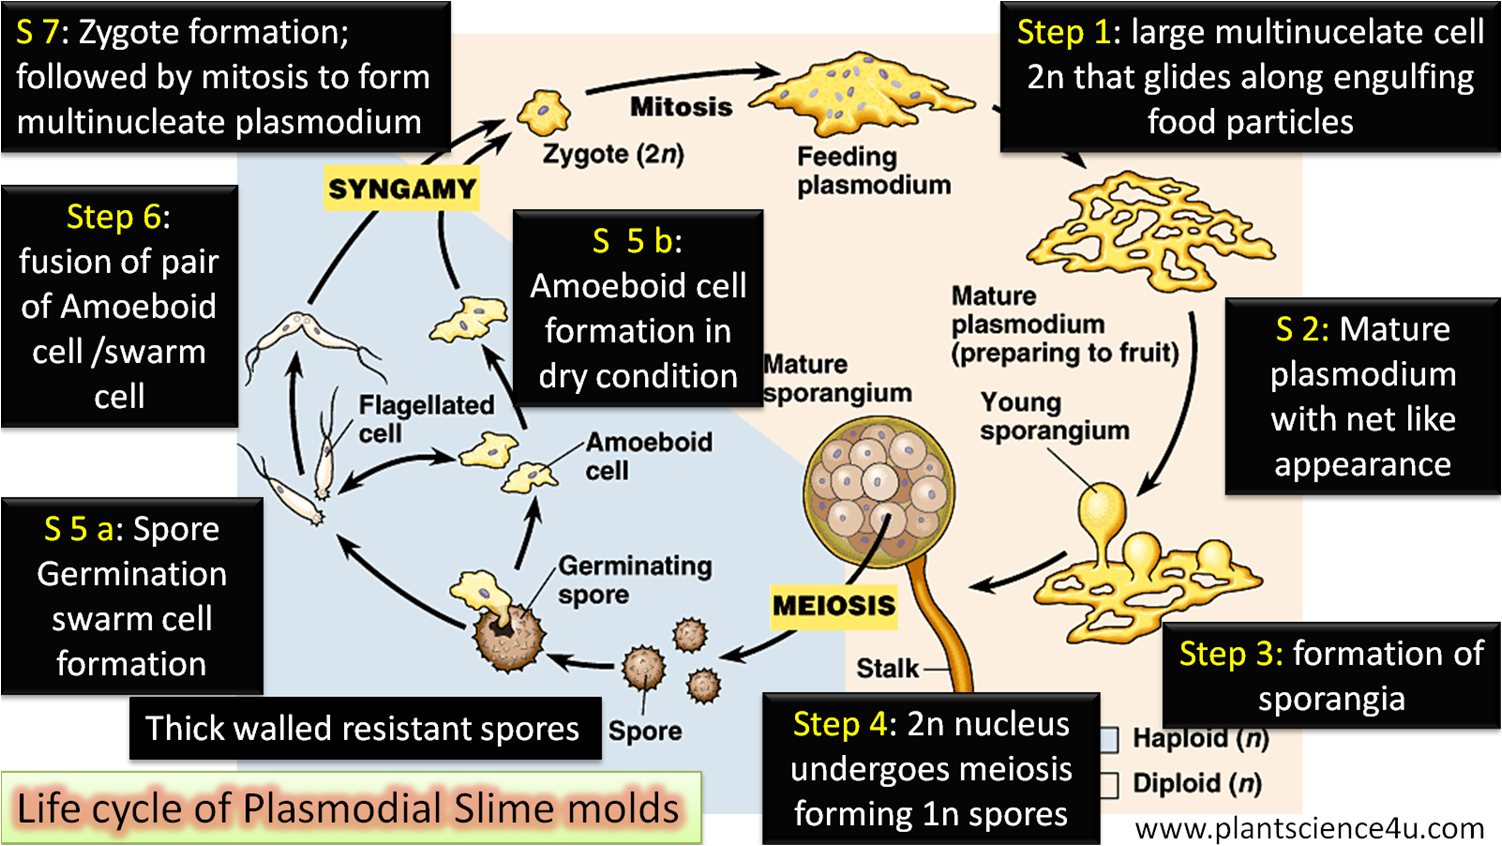 Life Cycle of Plasmodial Slime molds Simple Step Wise Explanation